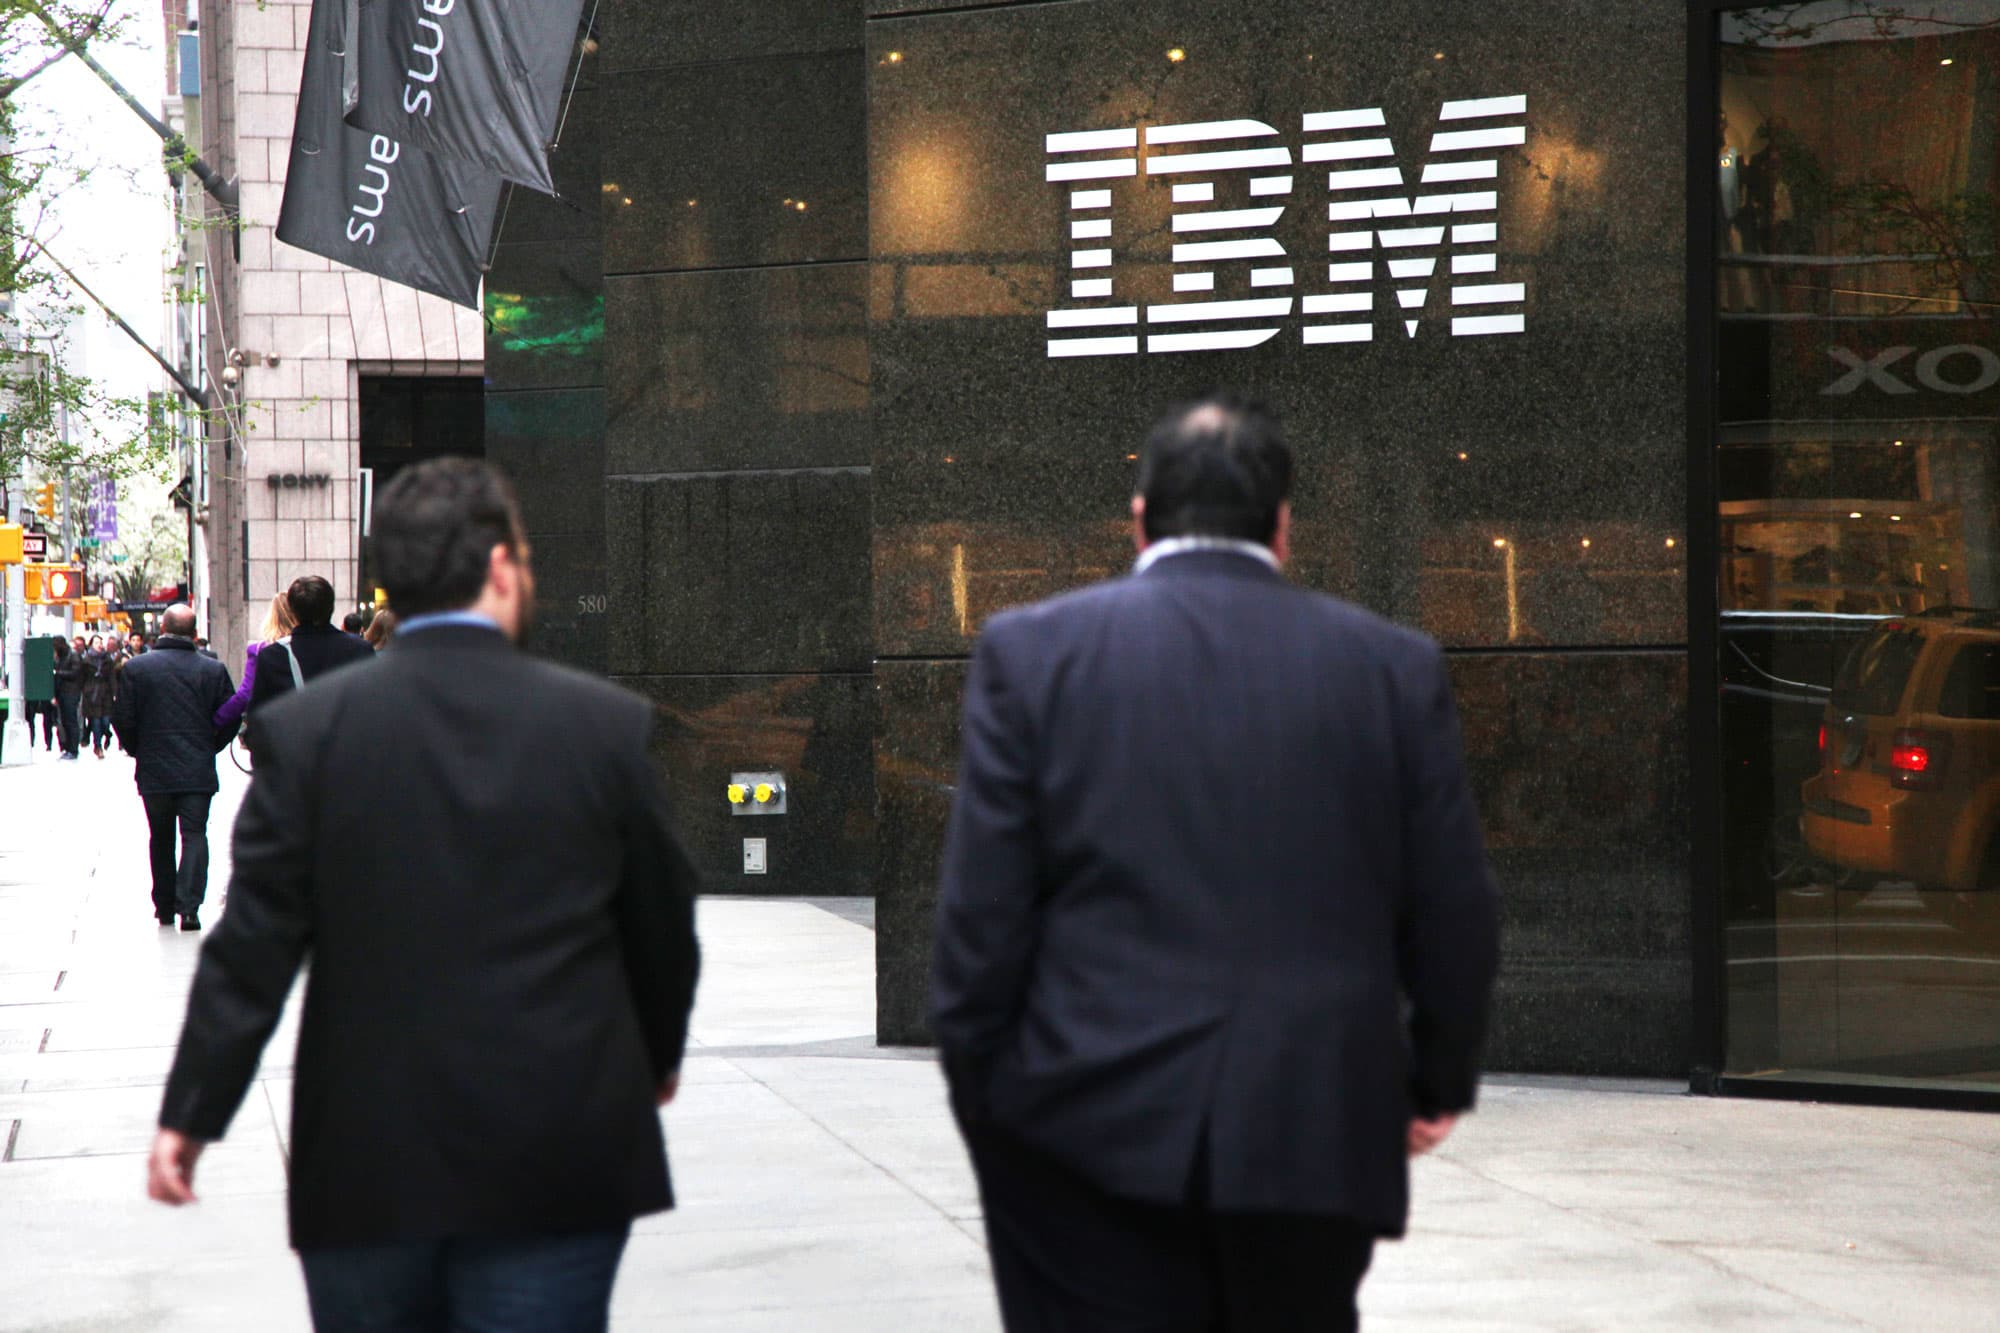 IBM, United Airlines, Zions Bancorp and more